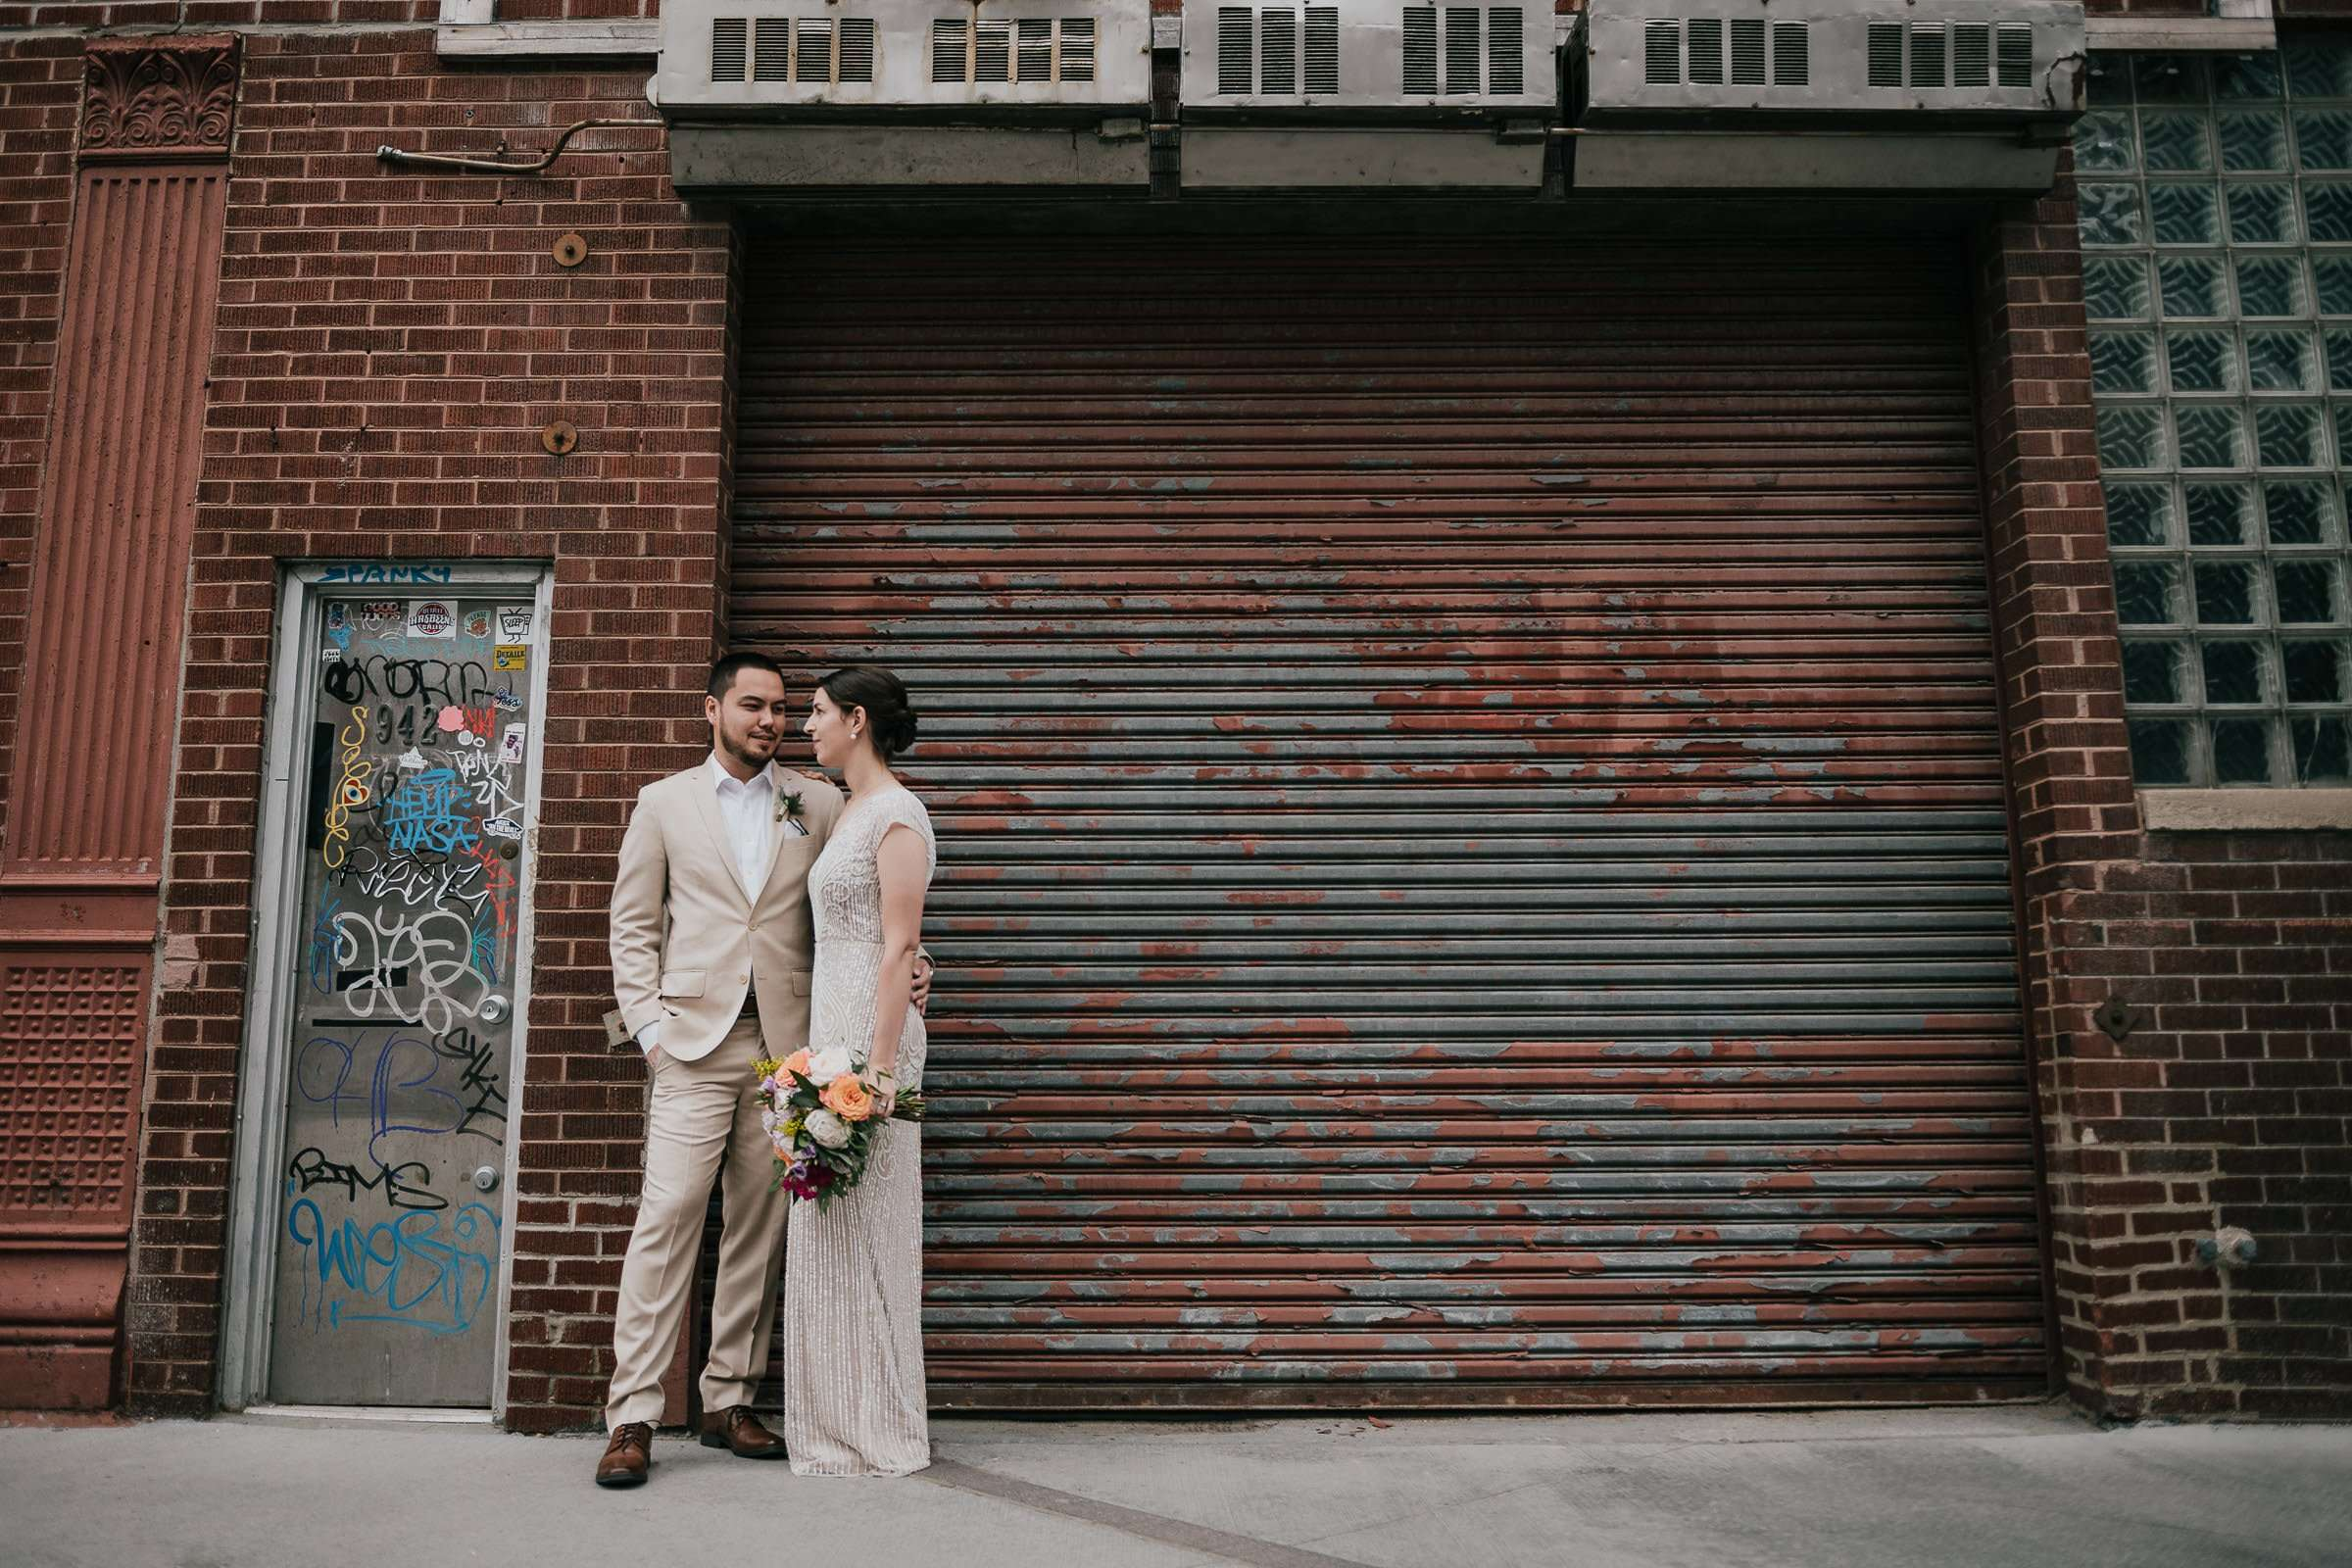 chicago wedding photographer, best chicago wedding photographer, elopement photographer, elope to chicago, oregon, pnw, west coast, chicago, best elopement photographer, intimate wedding, small wedding